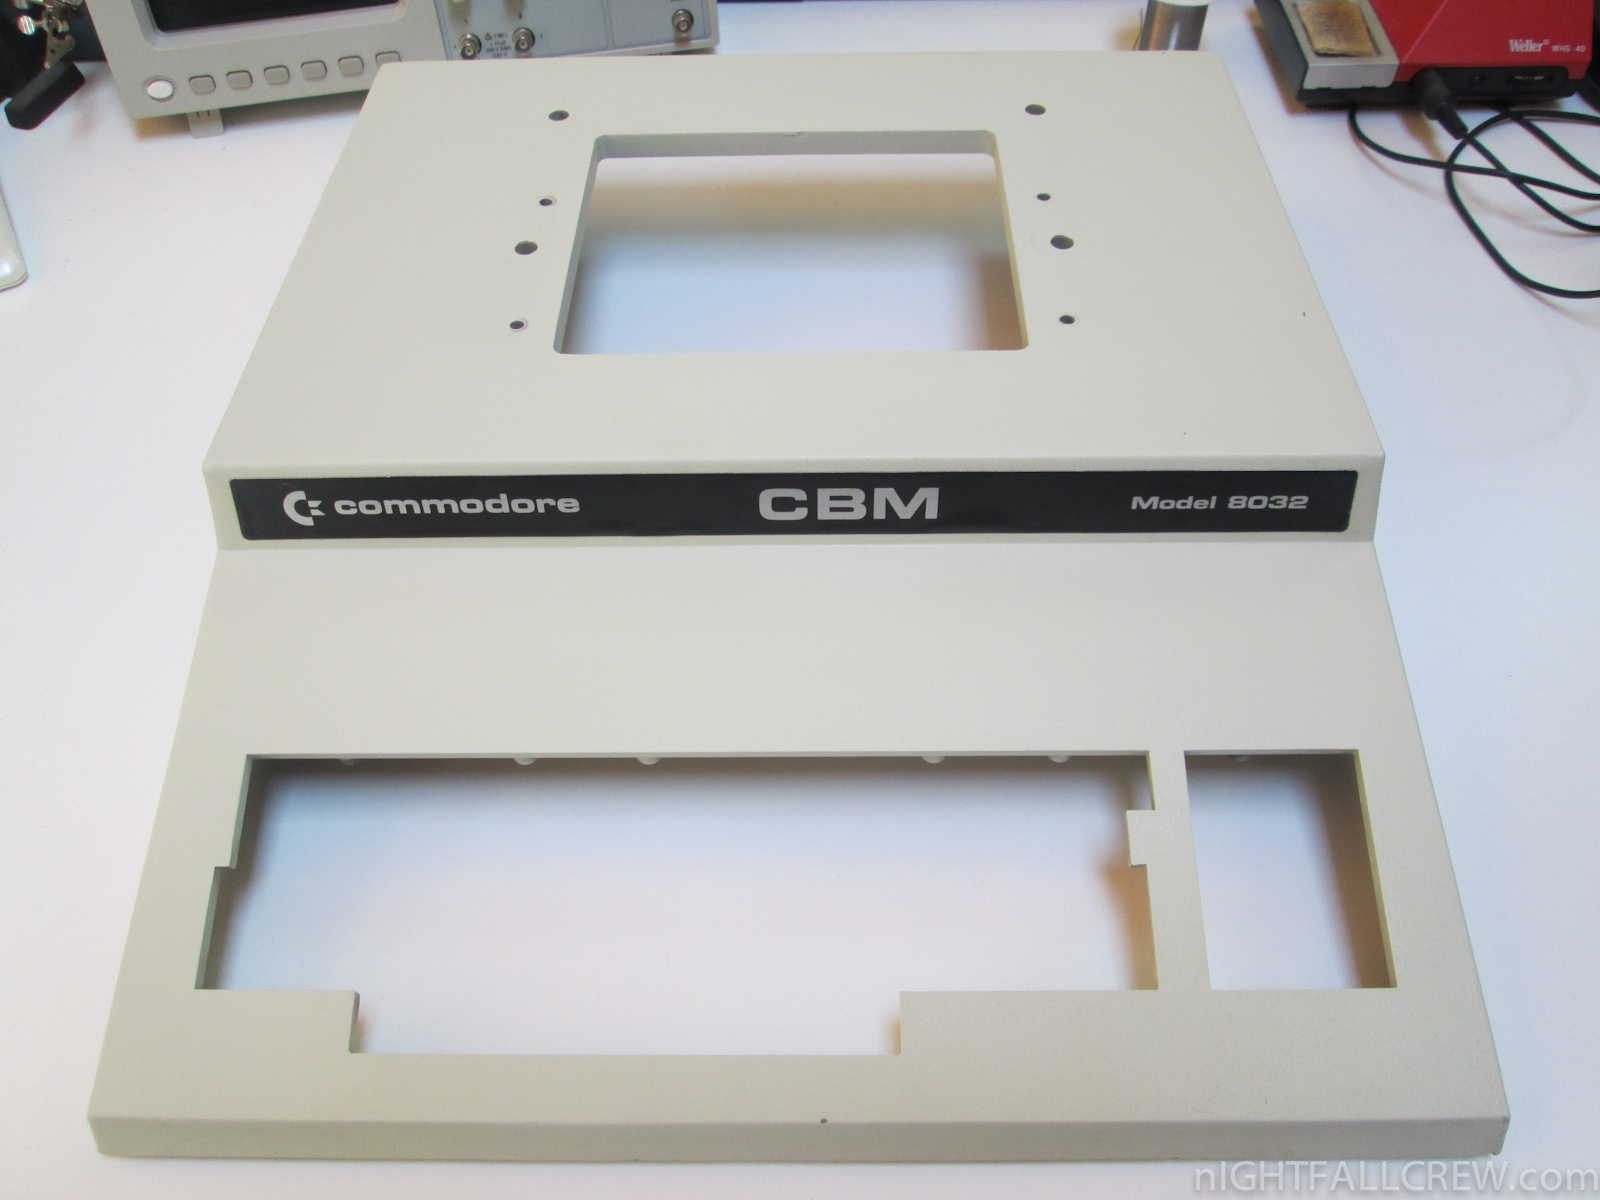 Cbm Cleaning Services : Commodore cbm w o monitor testing and cleaning